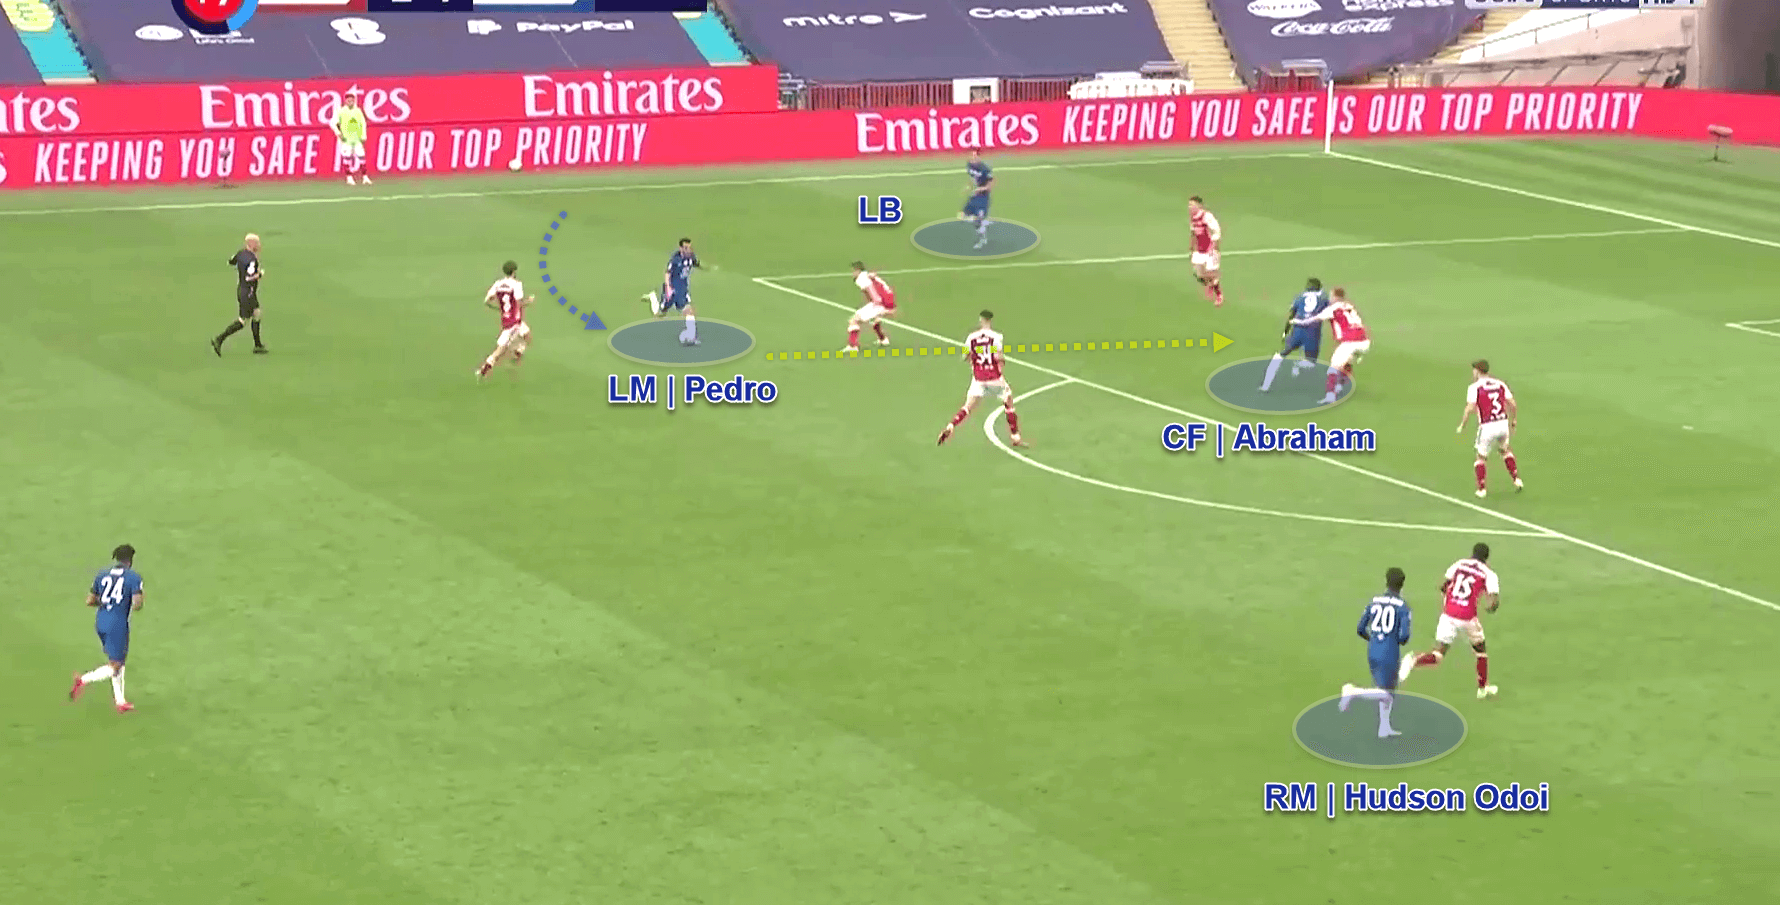 FA Cup 2019/20: Arsenal v Chelsea - tactical analysis - tactics